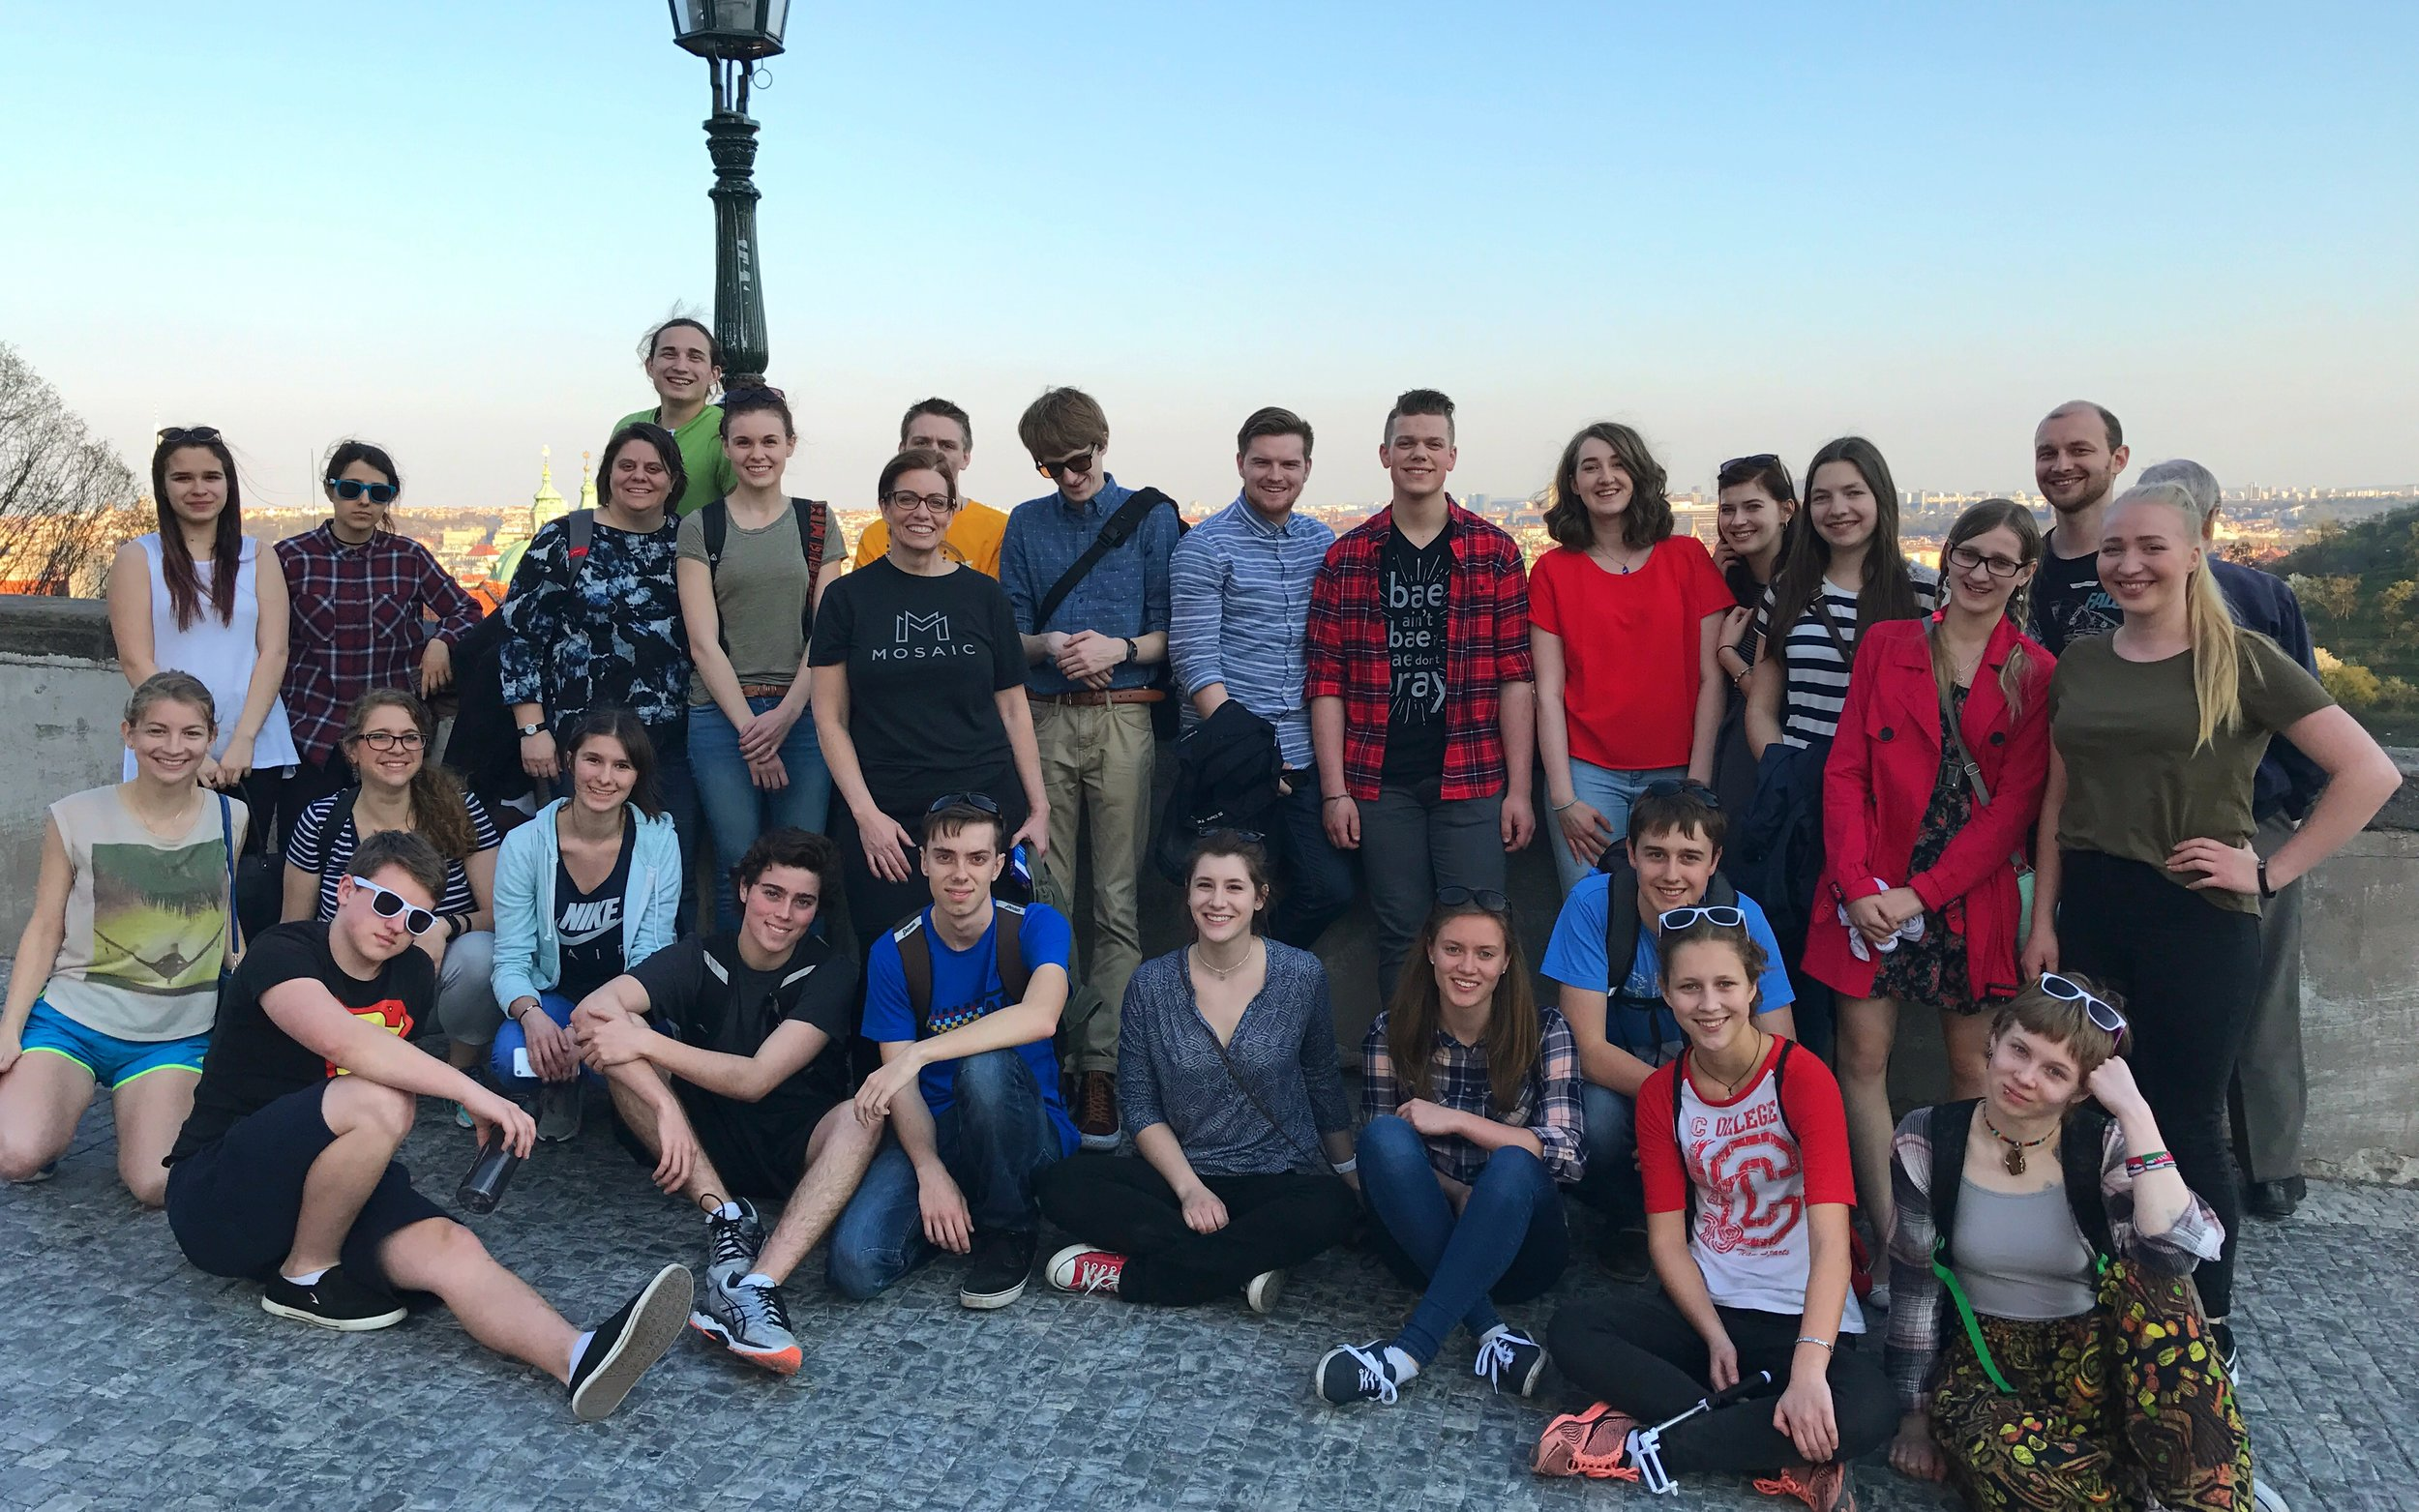 Our team and Czech friends together in Prague